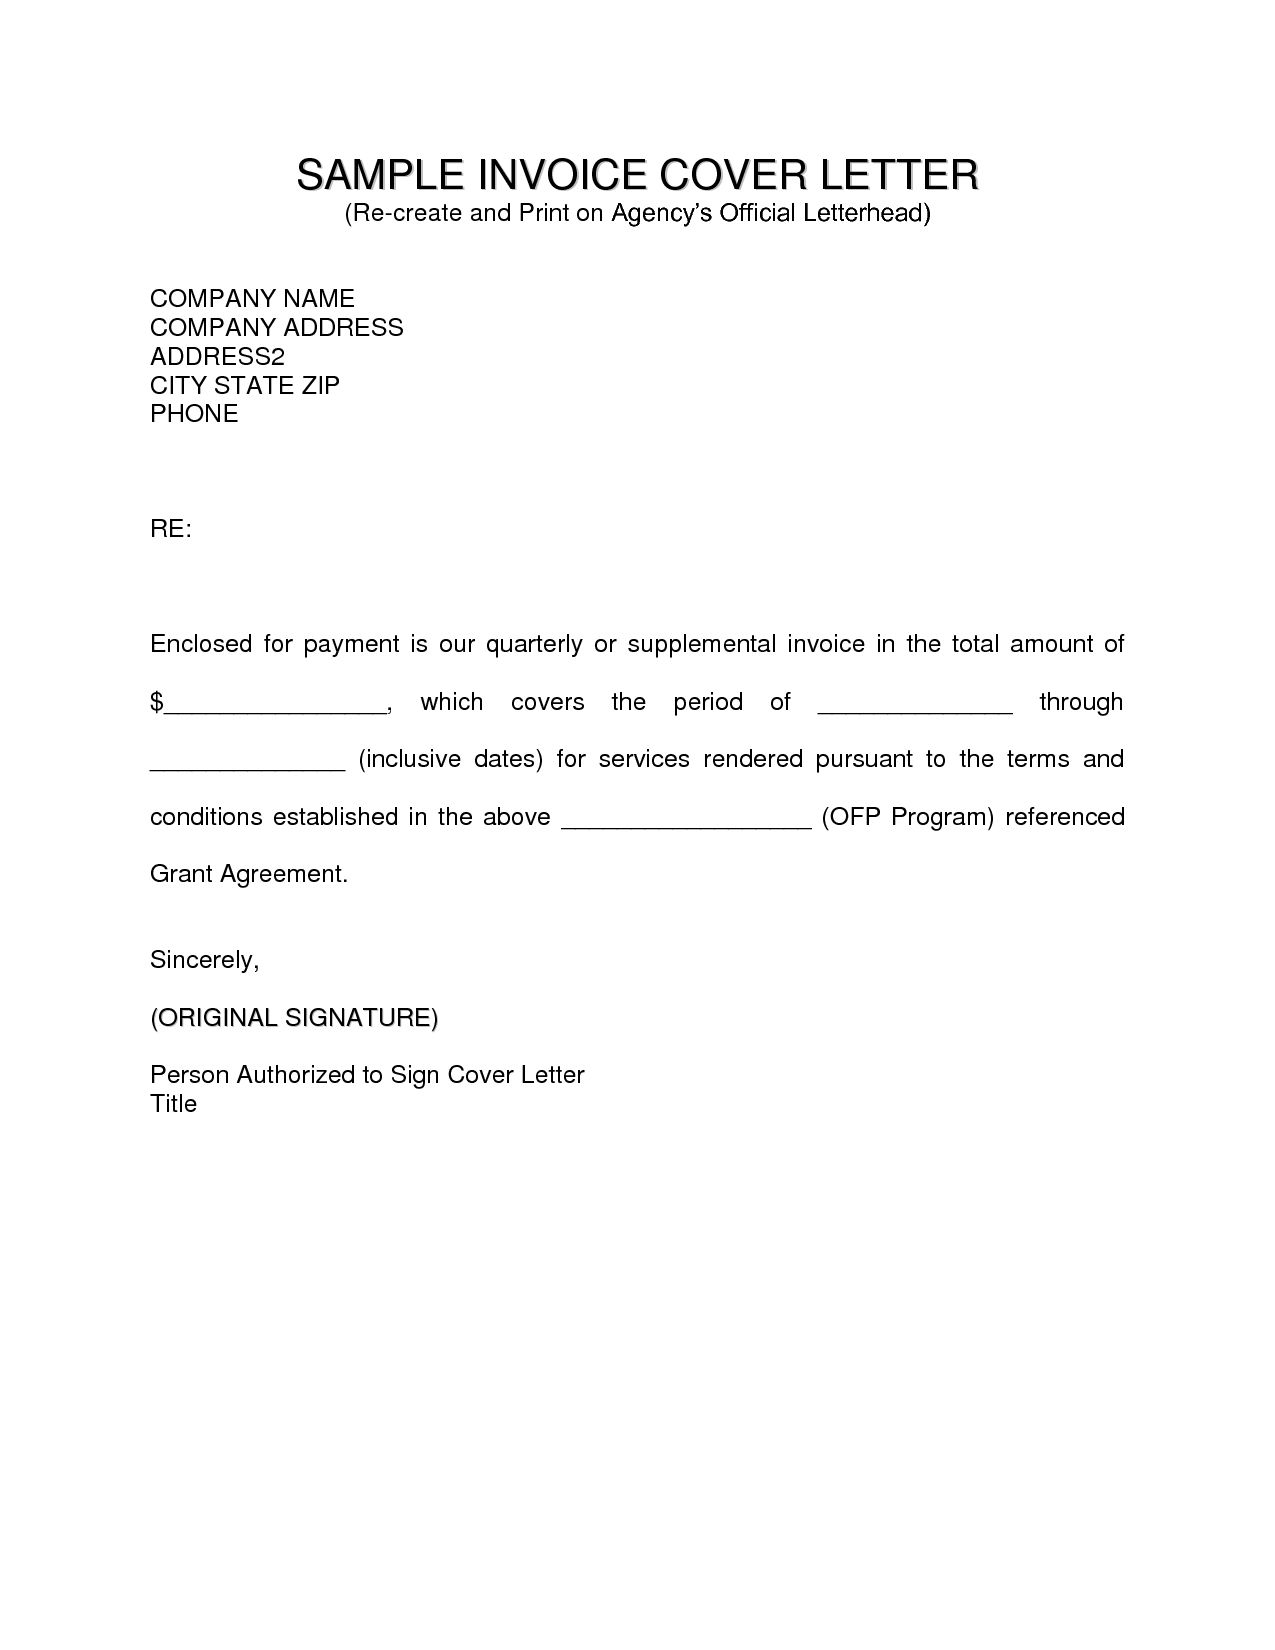 invoice cover letter invoice template ideas free sample cover letter for an invoice